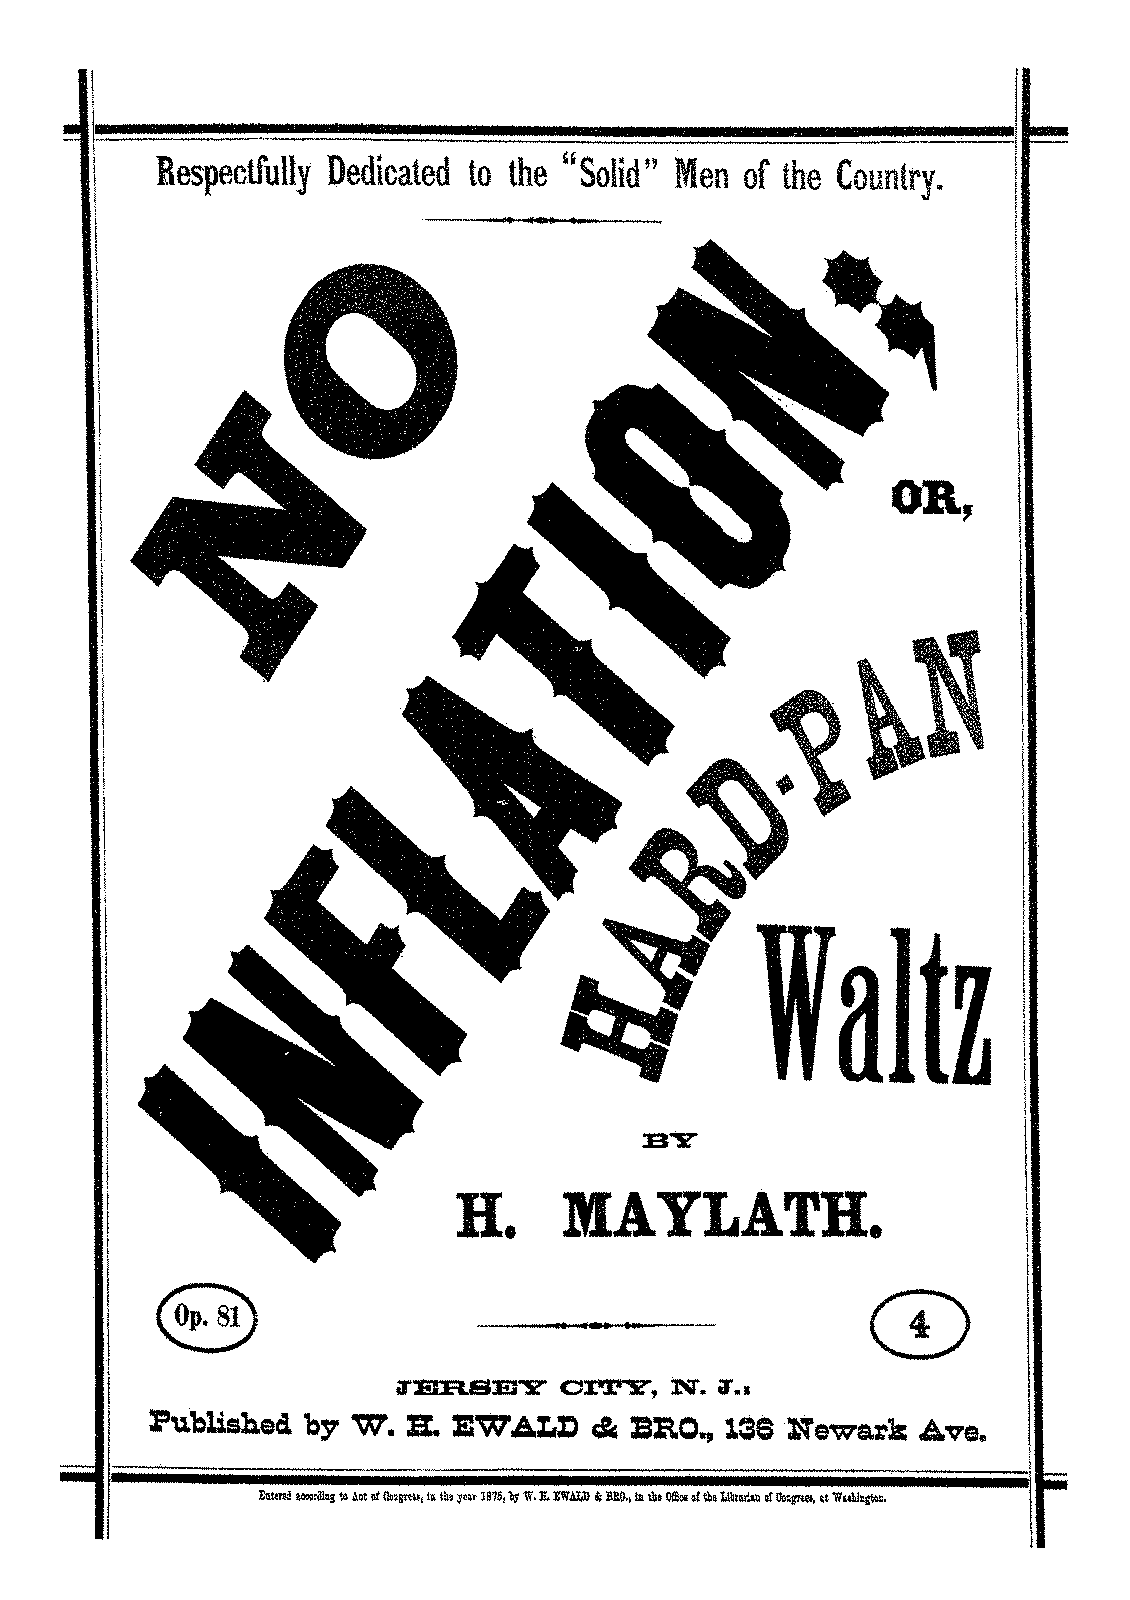 PMLP615067-Maylath - 81 No Inflation or, Hard-Pan Waltz op 81.pdf